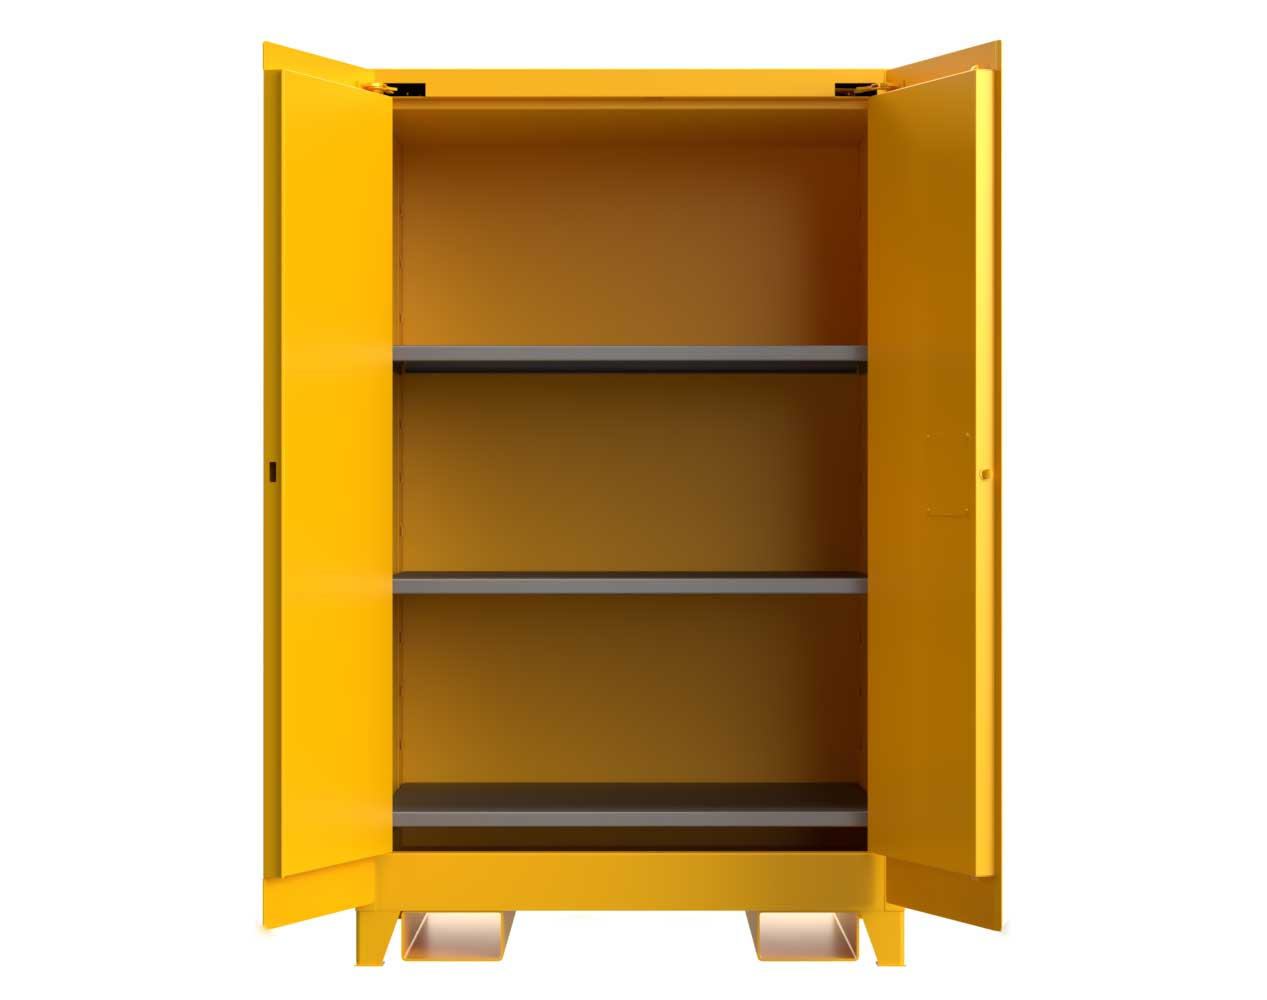 Heavy Duty 14 GA 90 Gallon Flammable Safety Cabinet with Manual-Closing Doors, 3 Shelves, Forklift Pockets – 43 In. W x 34 In. D x 70 In. H